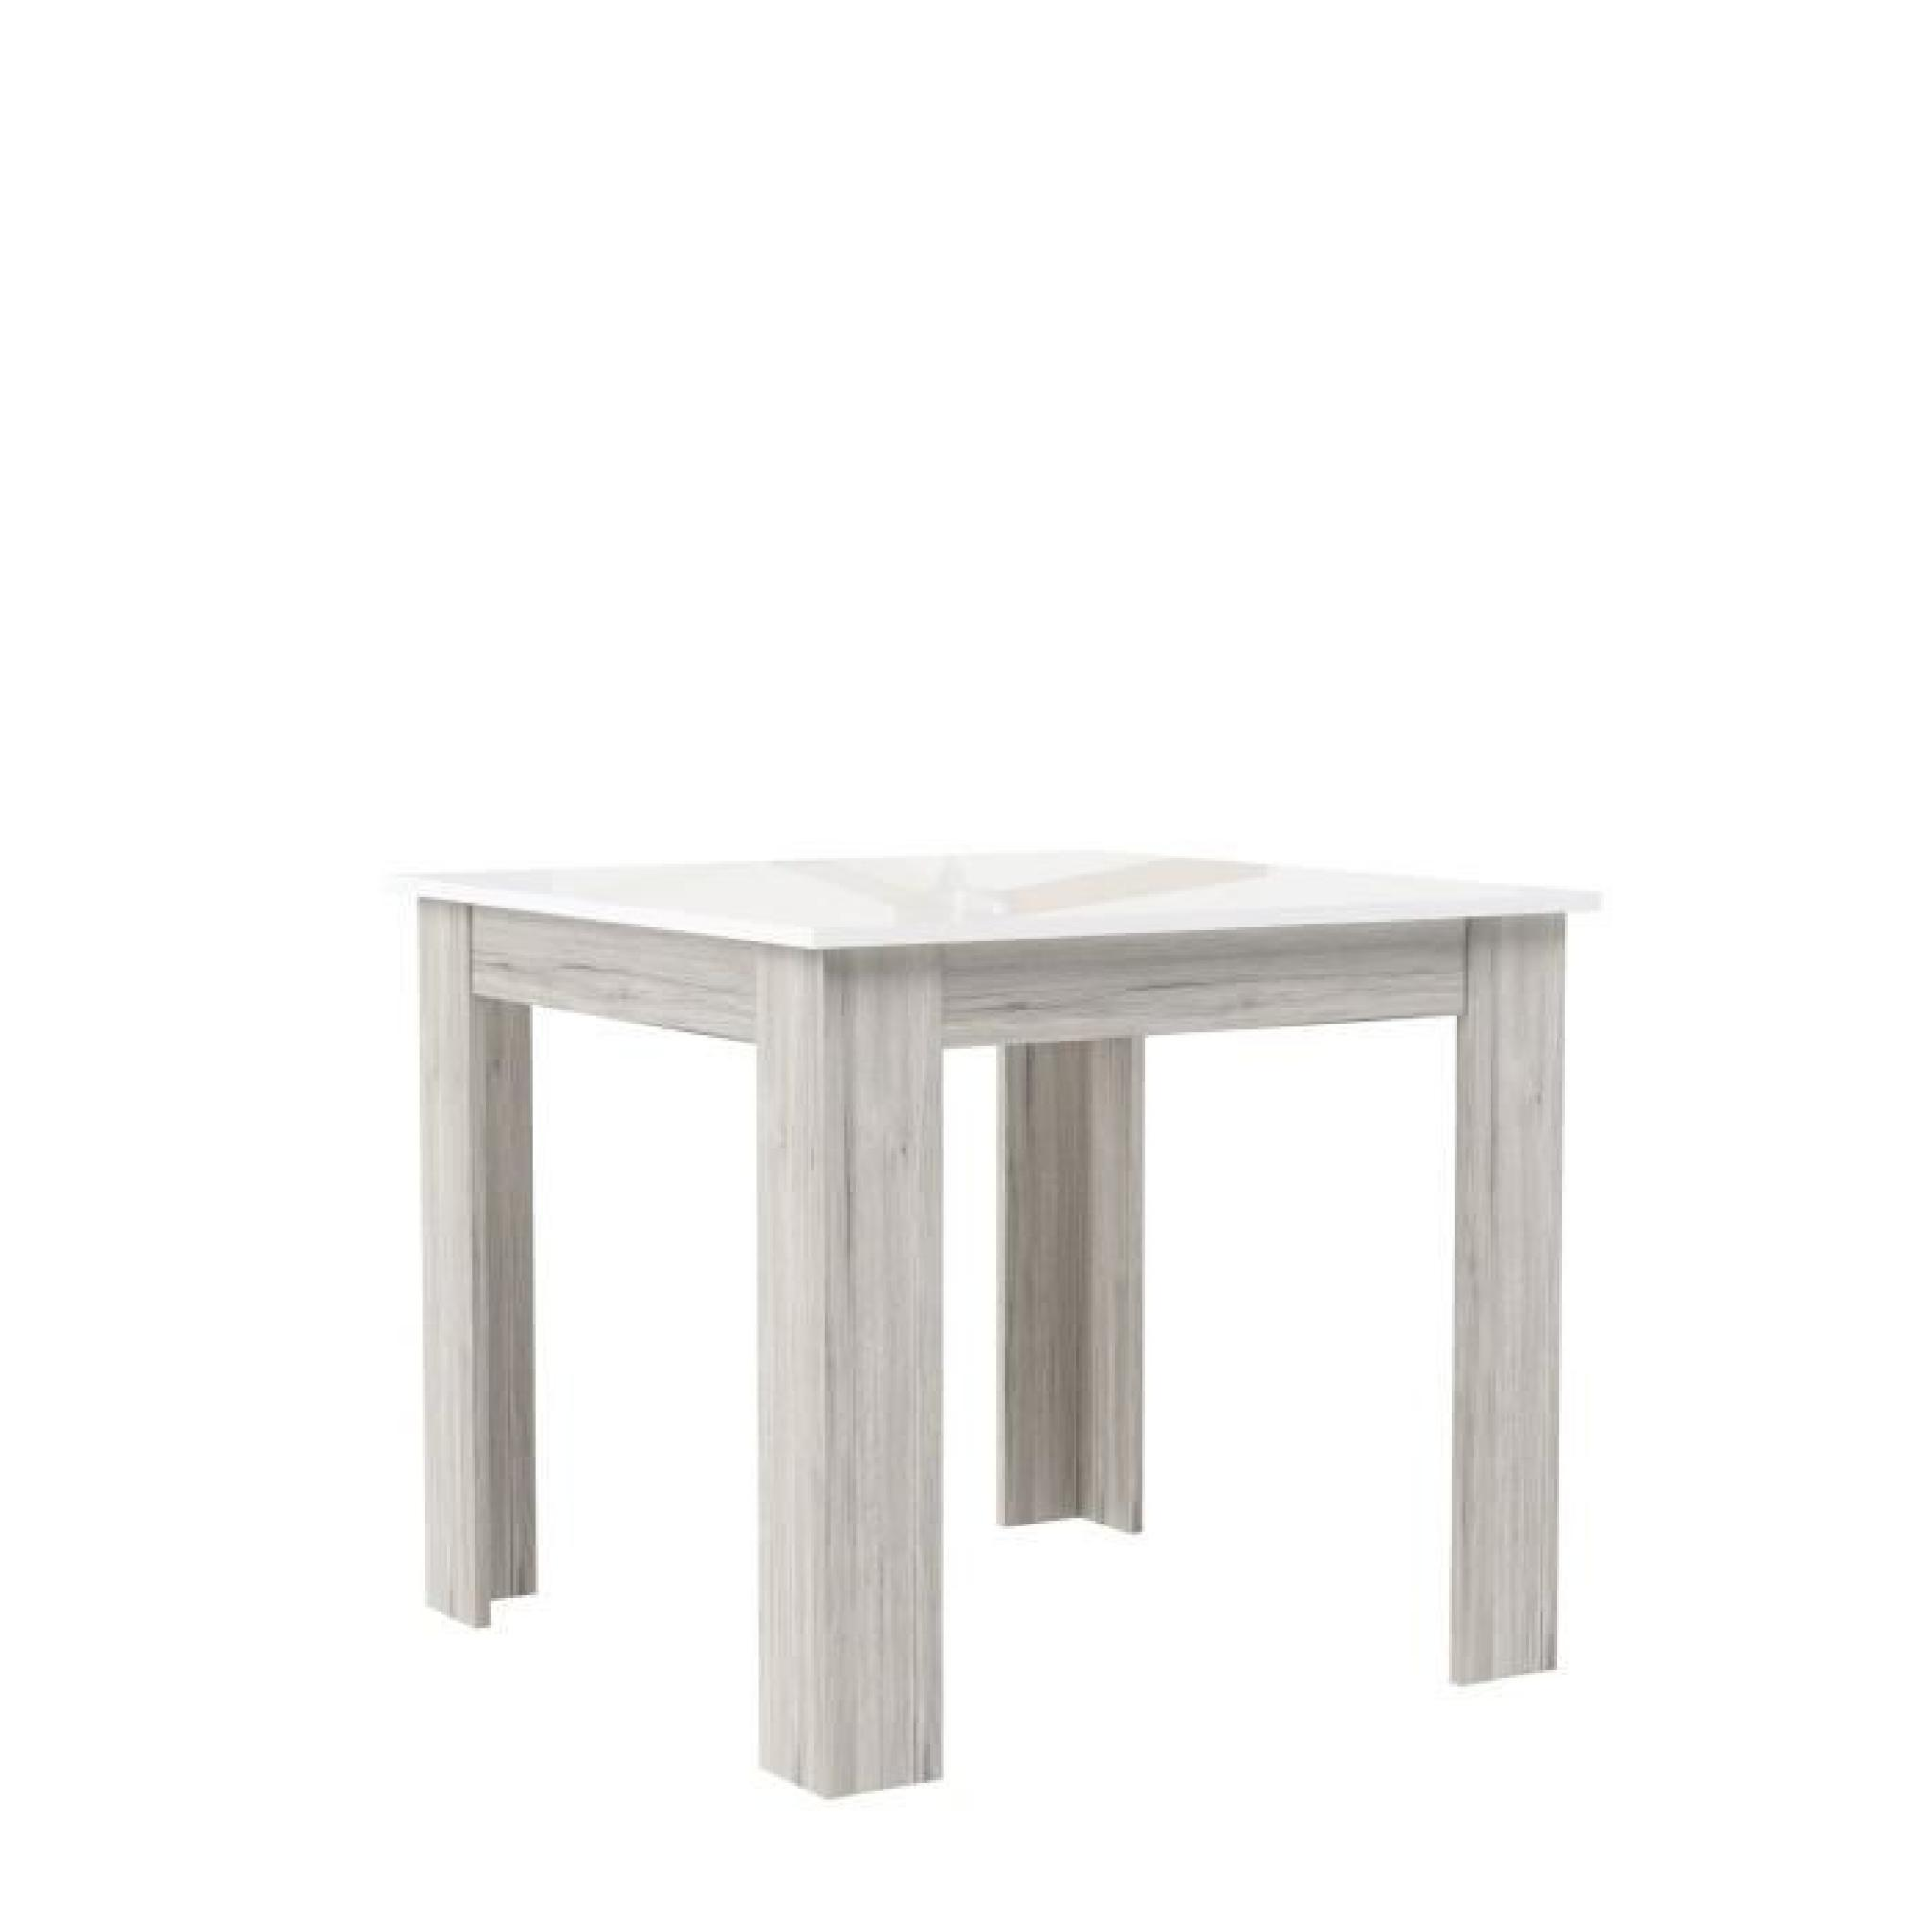 Finlandek table de bar tietti 110x110cm laqu blanc - Table de bar blanc laque ...